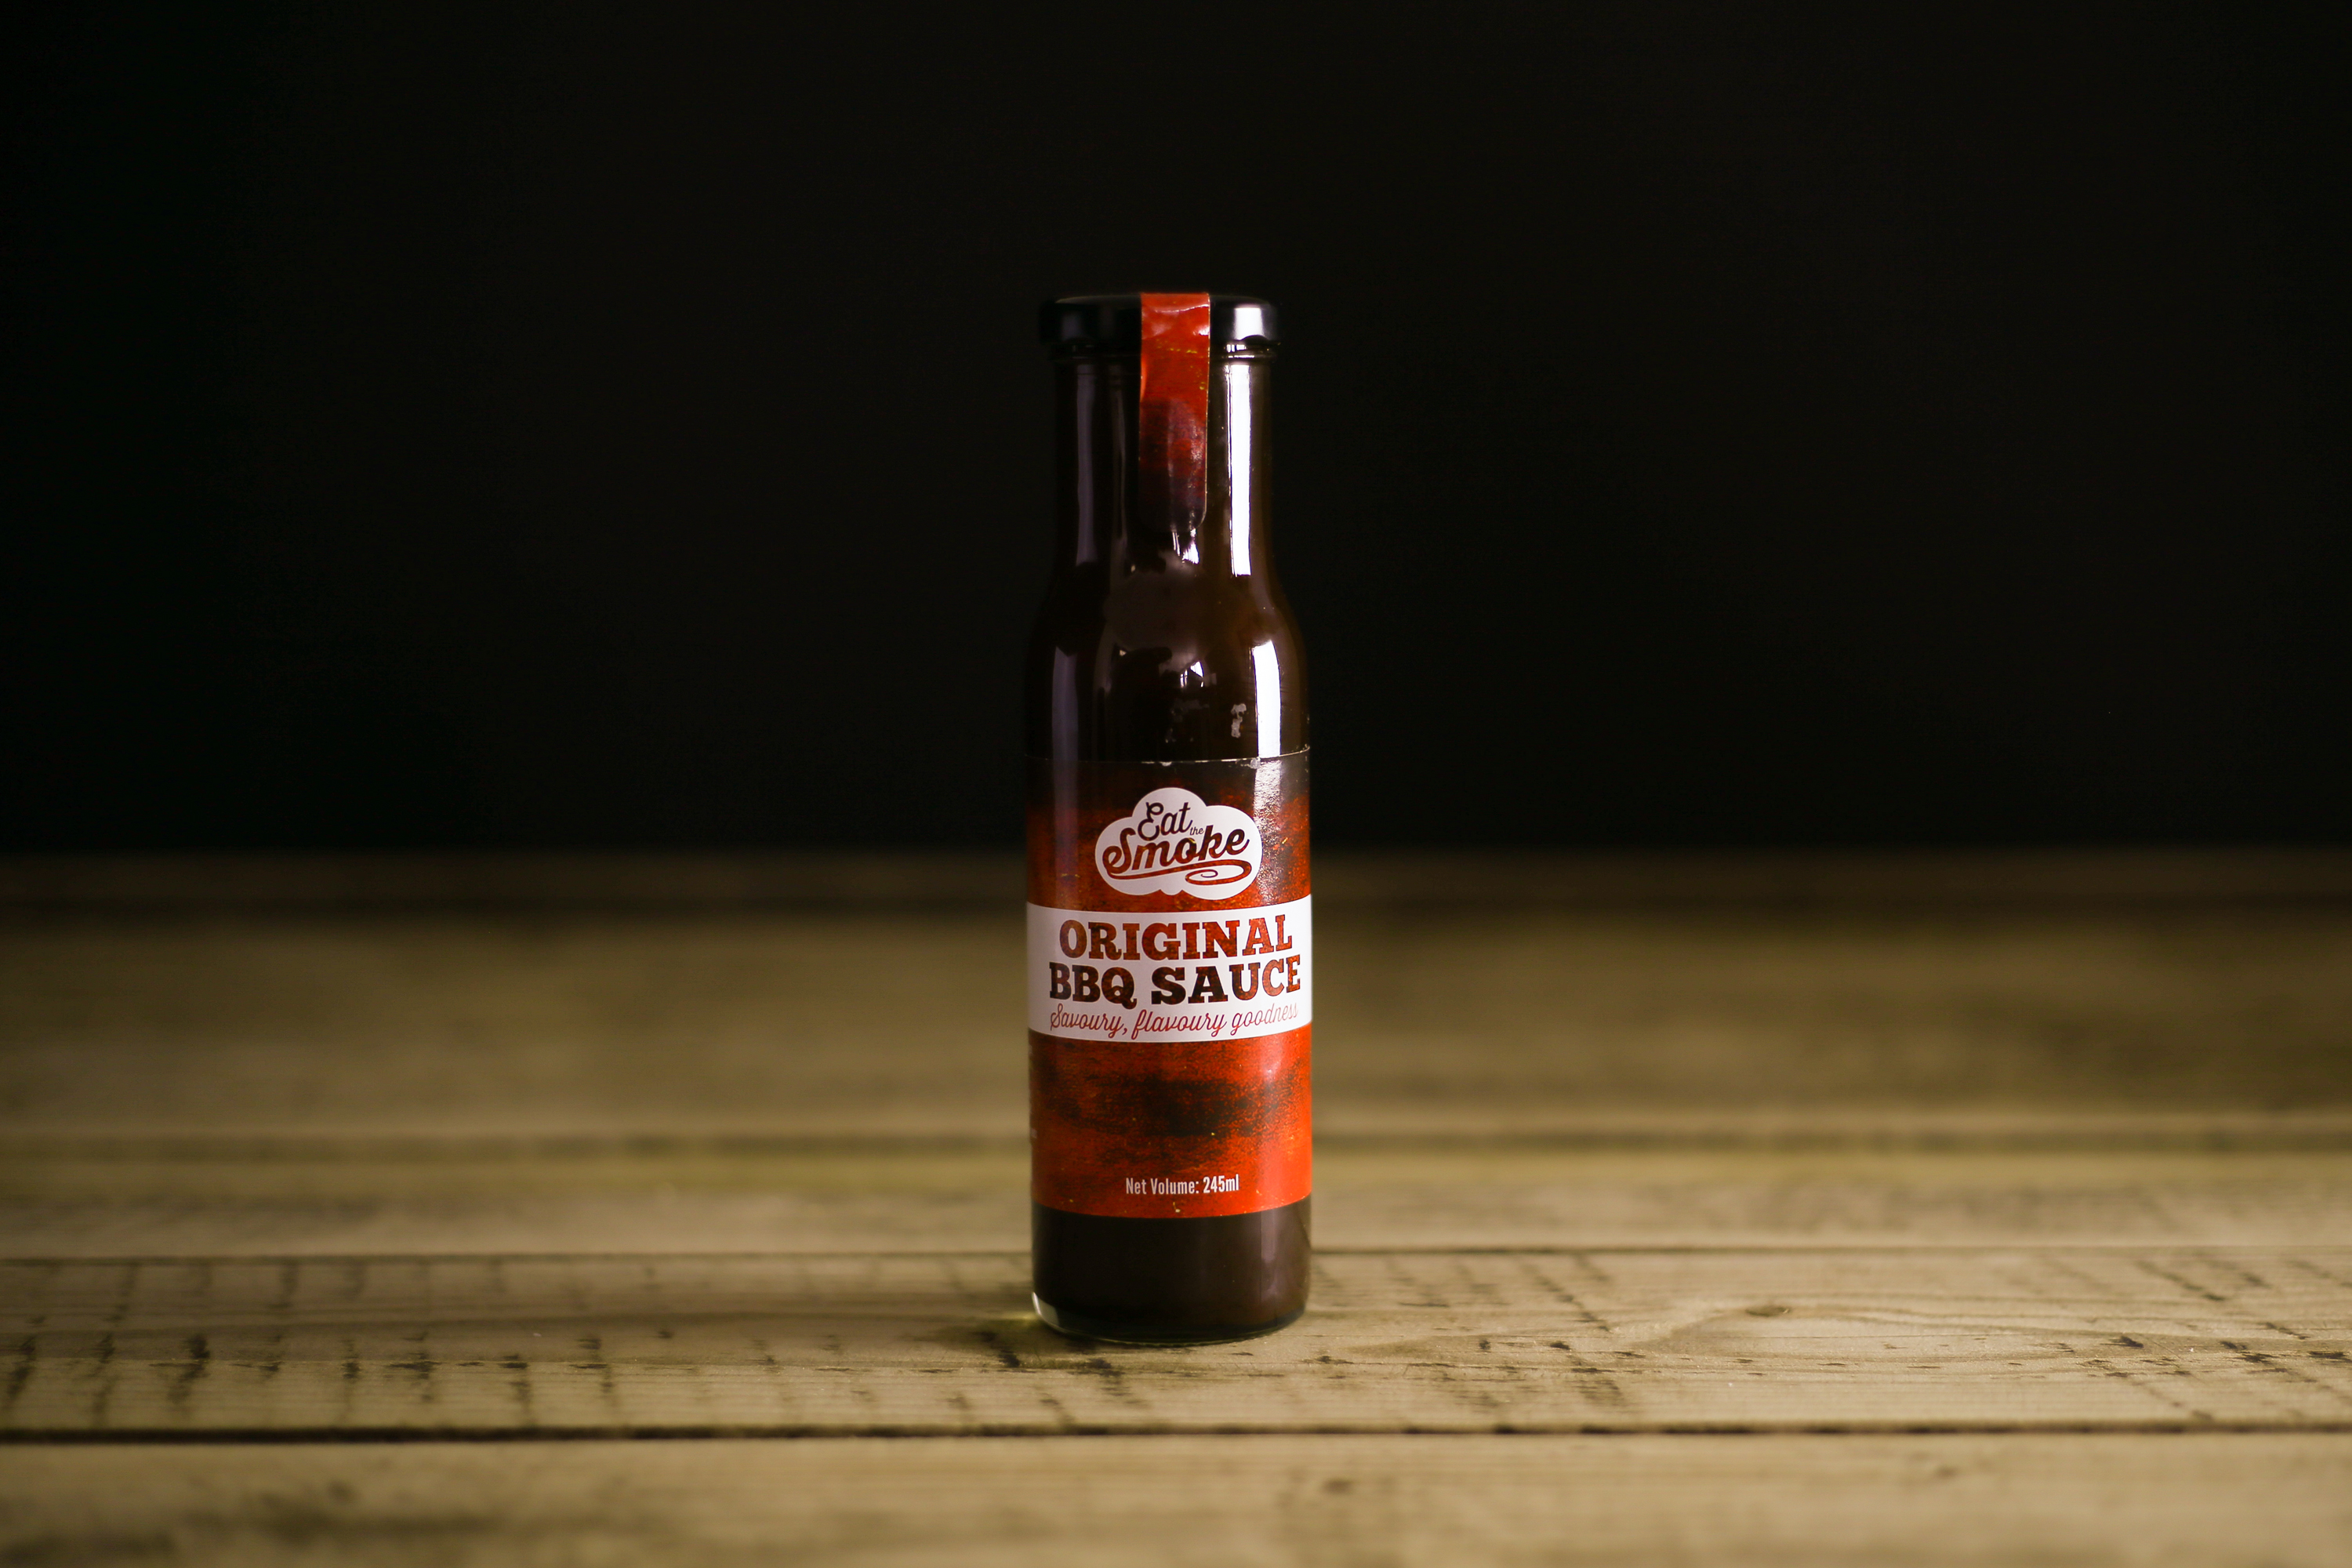 Eat the smoke Original BBQ sauce